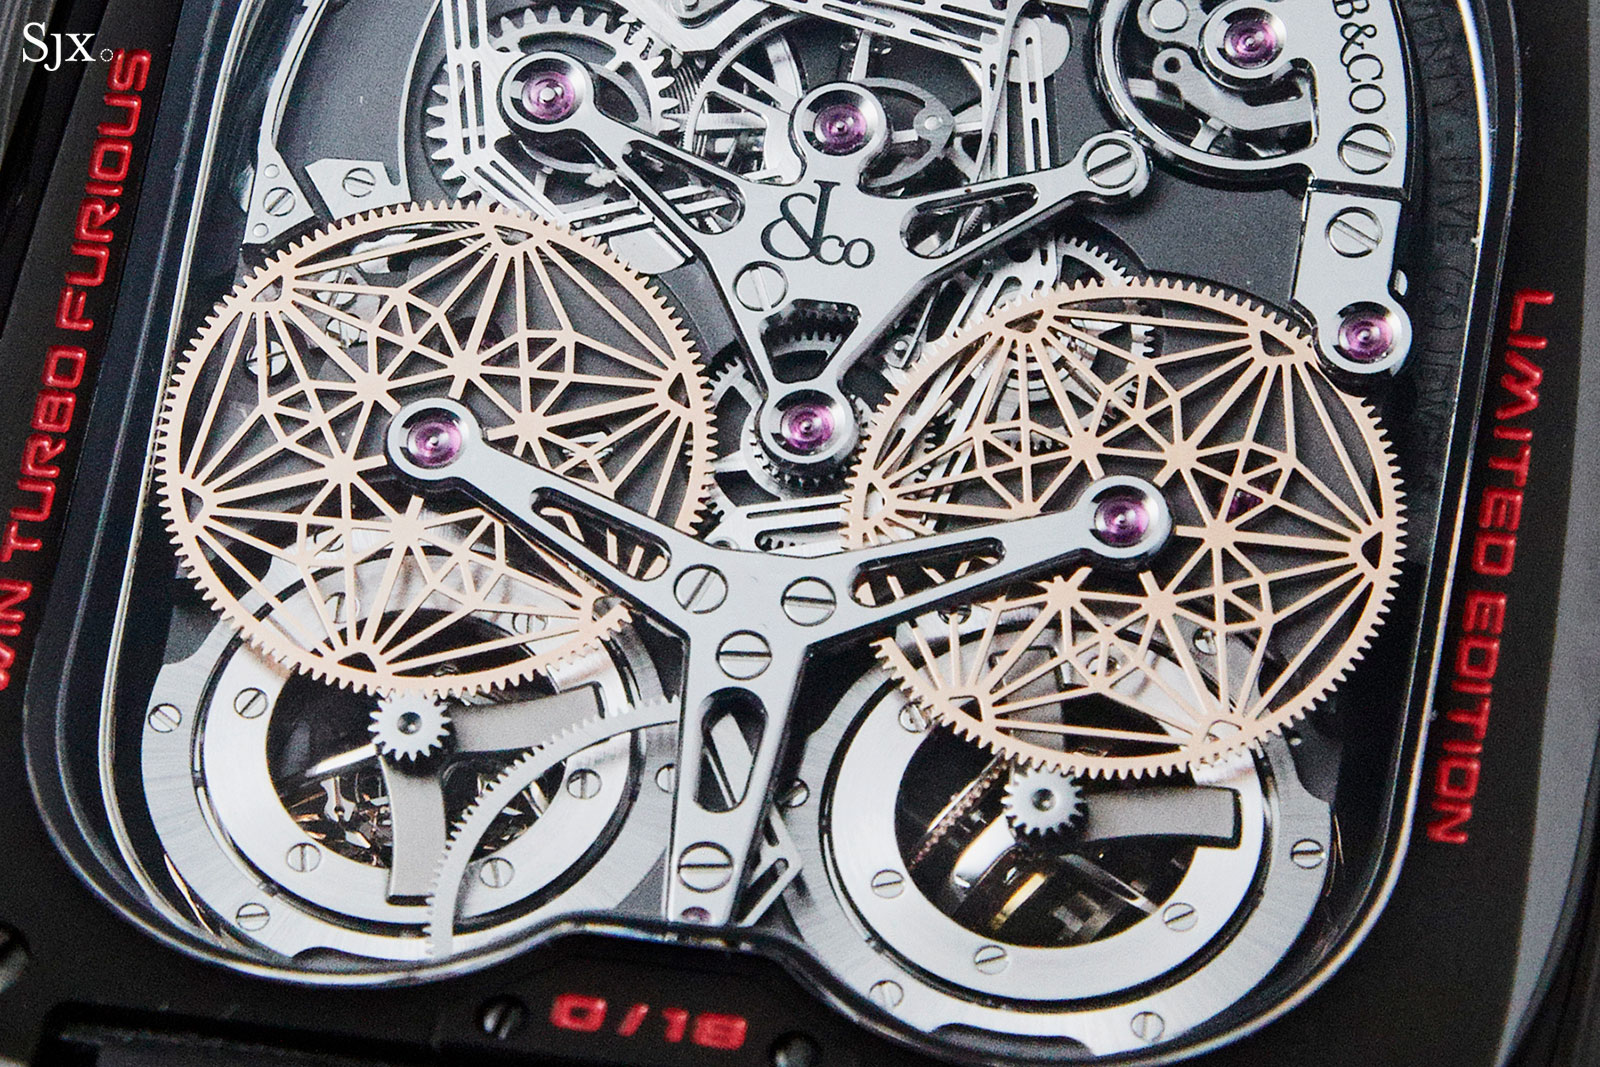 Jacob Co Twin Turbo Furious tourbillon 4